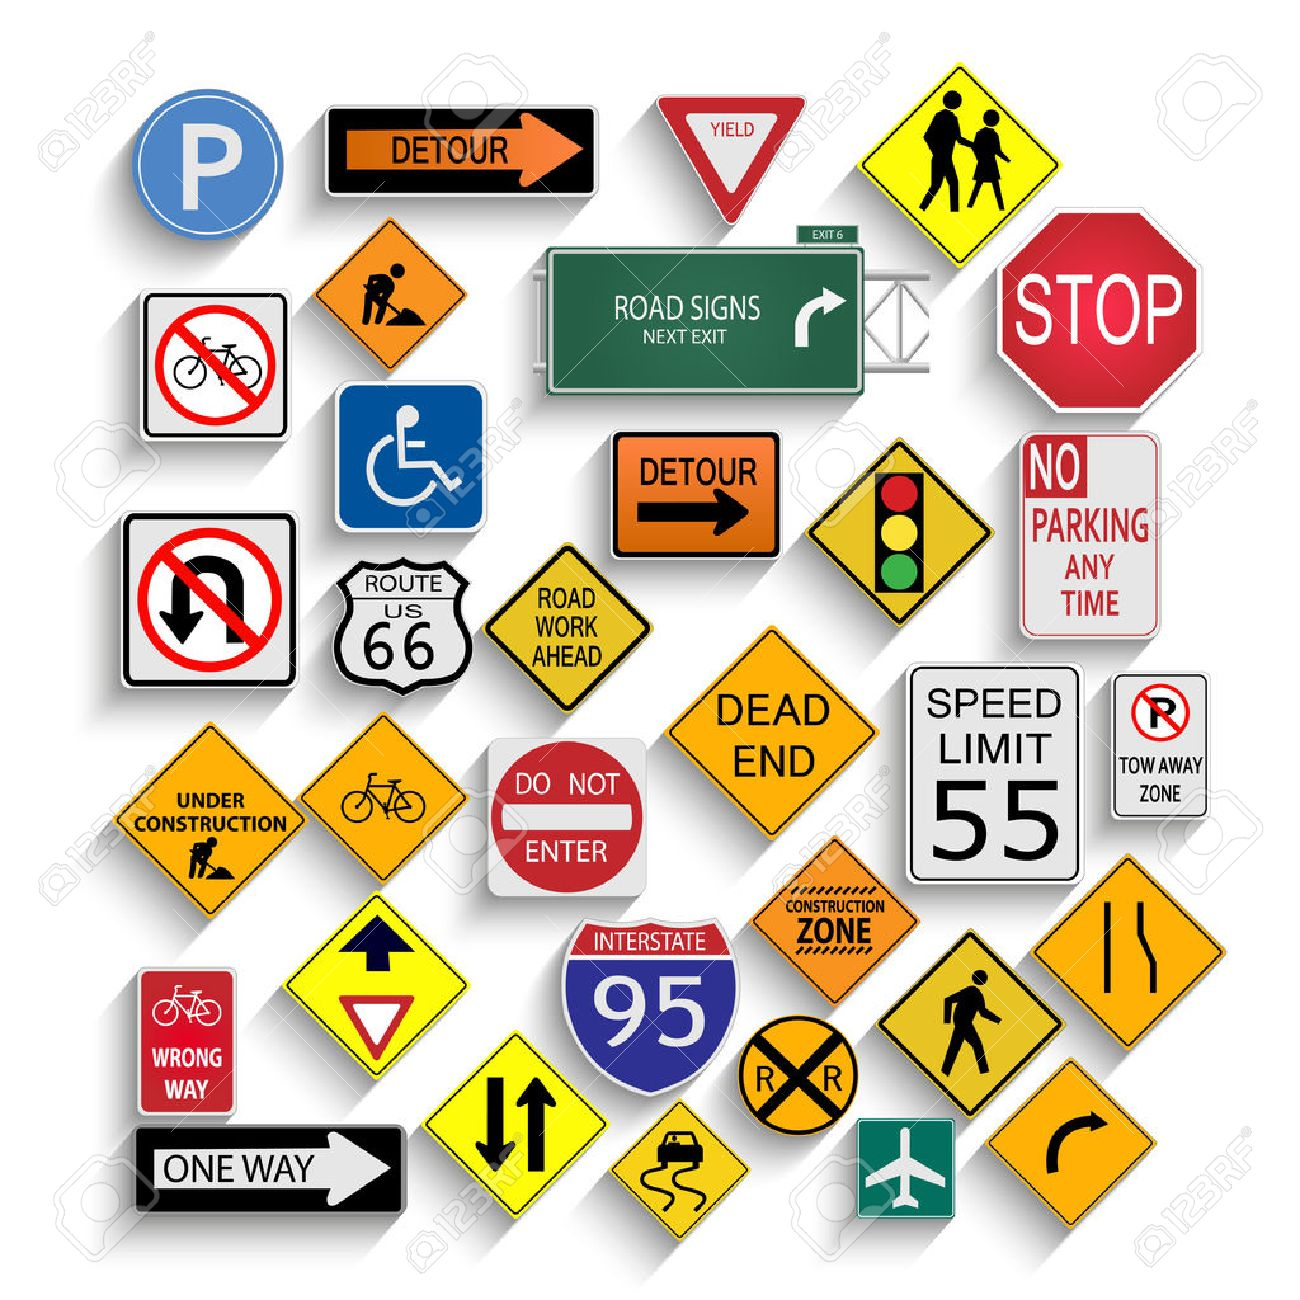 Street signs stock photos royalty free business images illustration of various road signs isolated on a white background biocorpaavc Choice Image